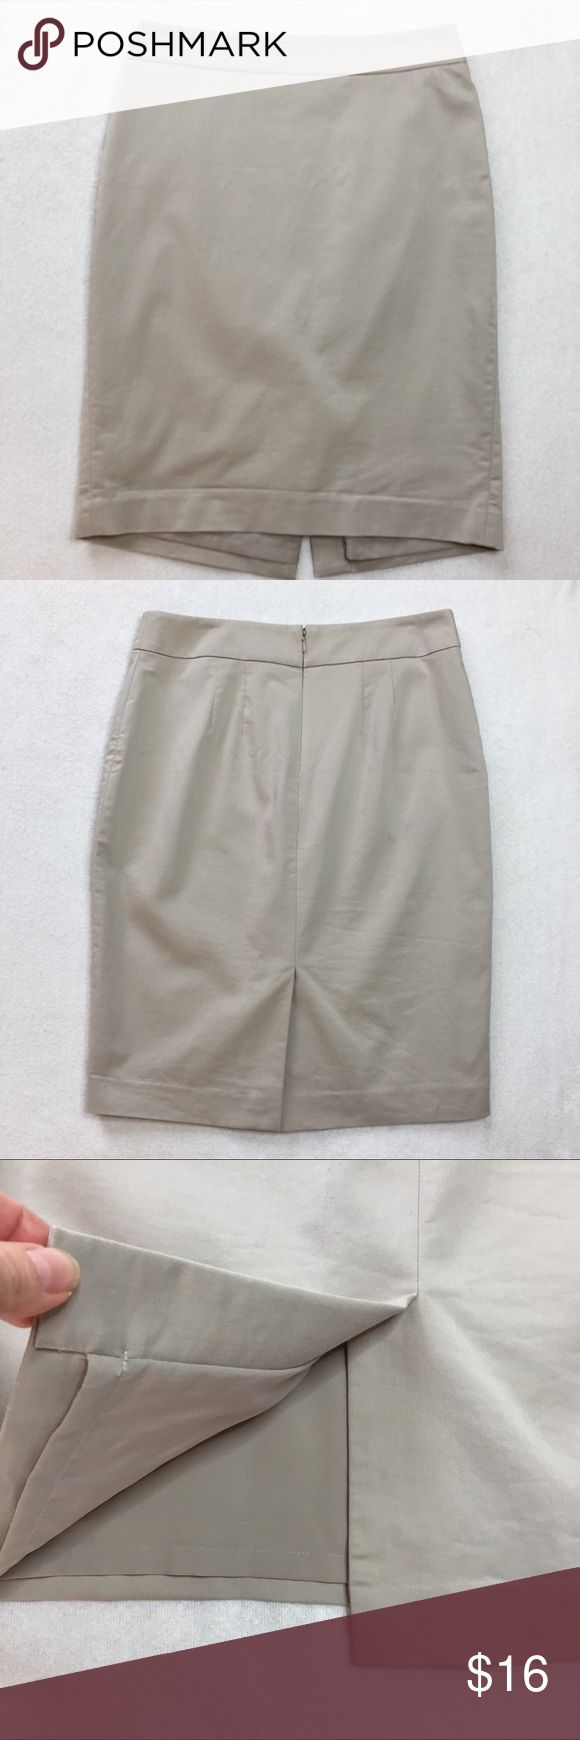 """Ann Taylor Tan Pencil Skirt - Size 4 Fantastic Skirt by Ann Taylor. Size 4. Tan in color. Zip back with hook and eye closure. Fully lined. In excellent condition! Smoke free home.  Approximate Measurements laying flat: Waist (one side): 14-5/8"""" Front Length: 21-3/4"""" Ann Taylor Skirts Pencil"""